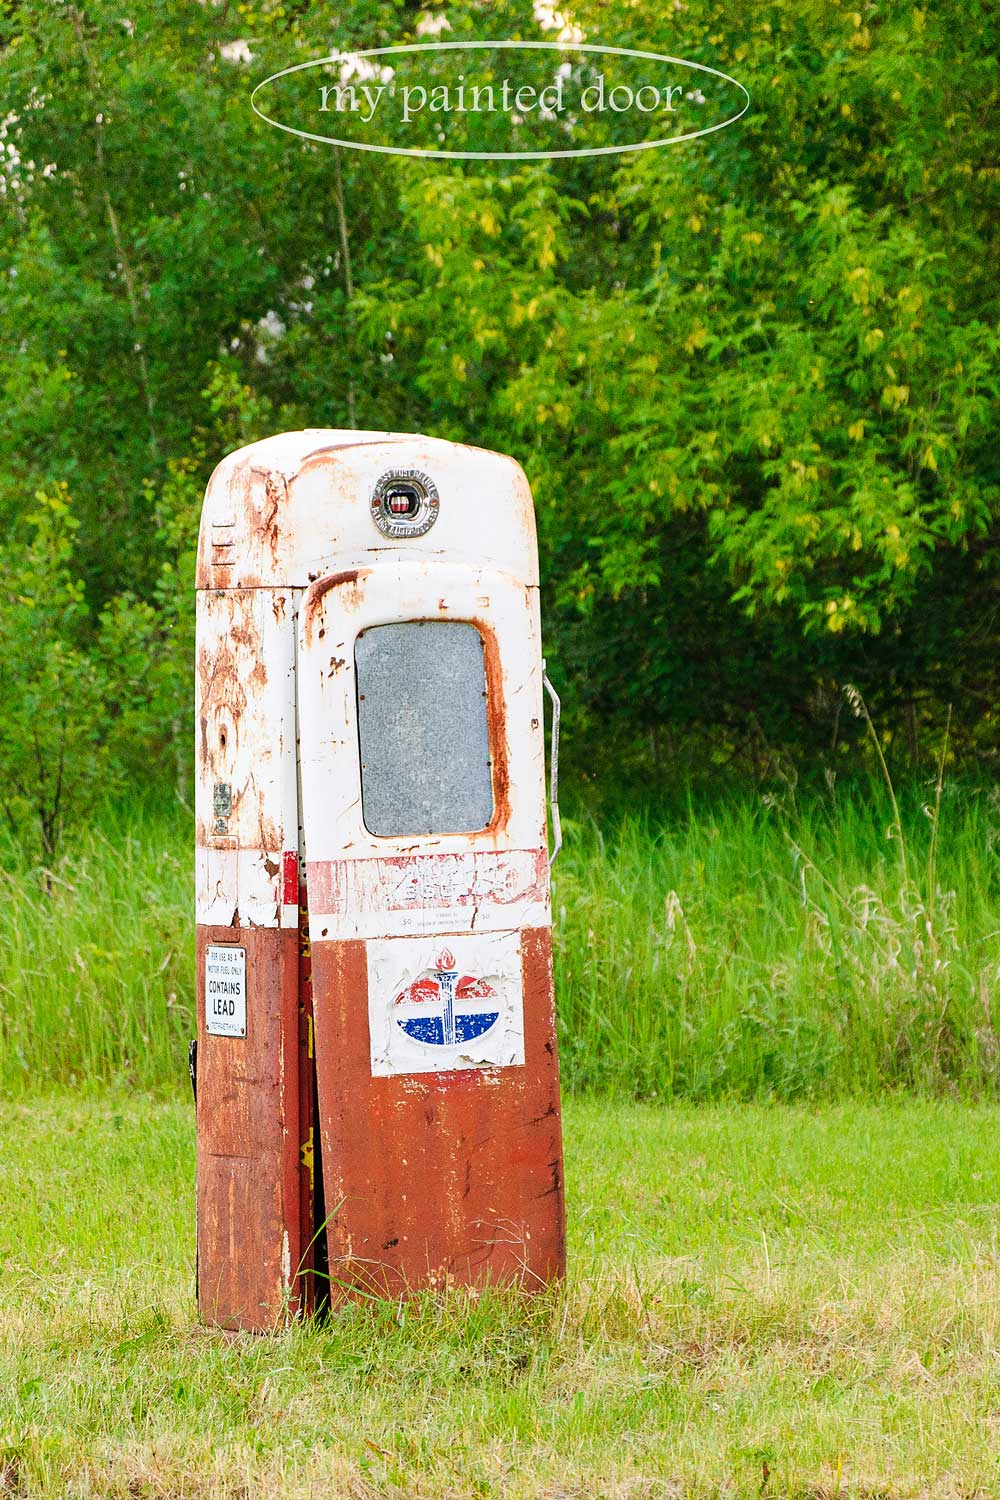 Old gas pump for my garden